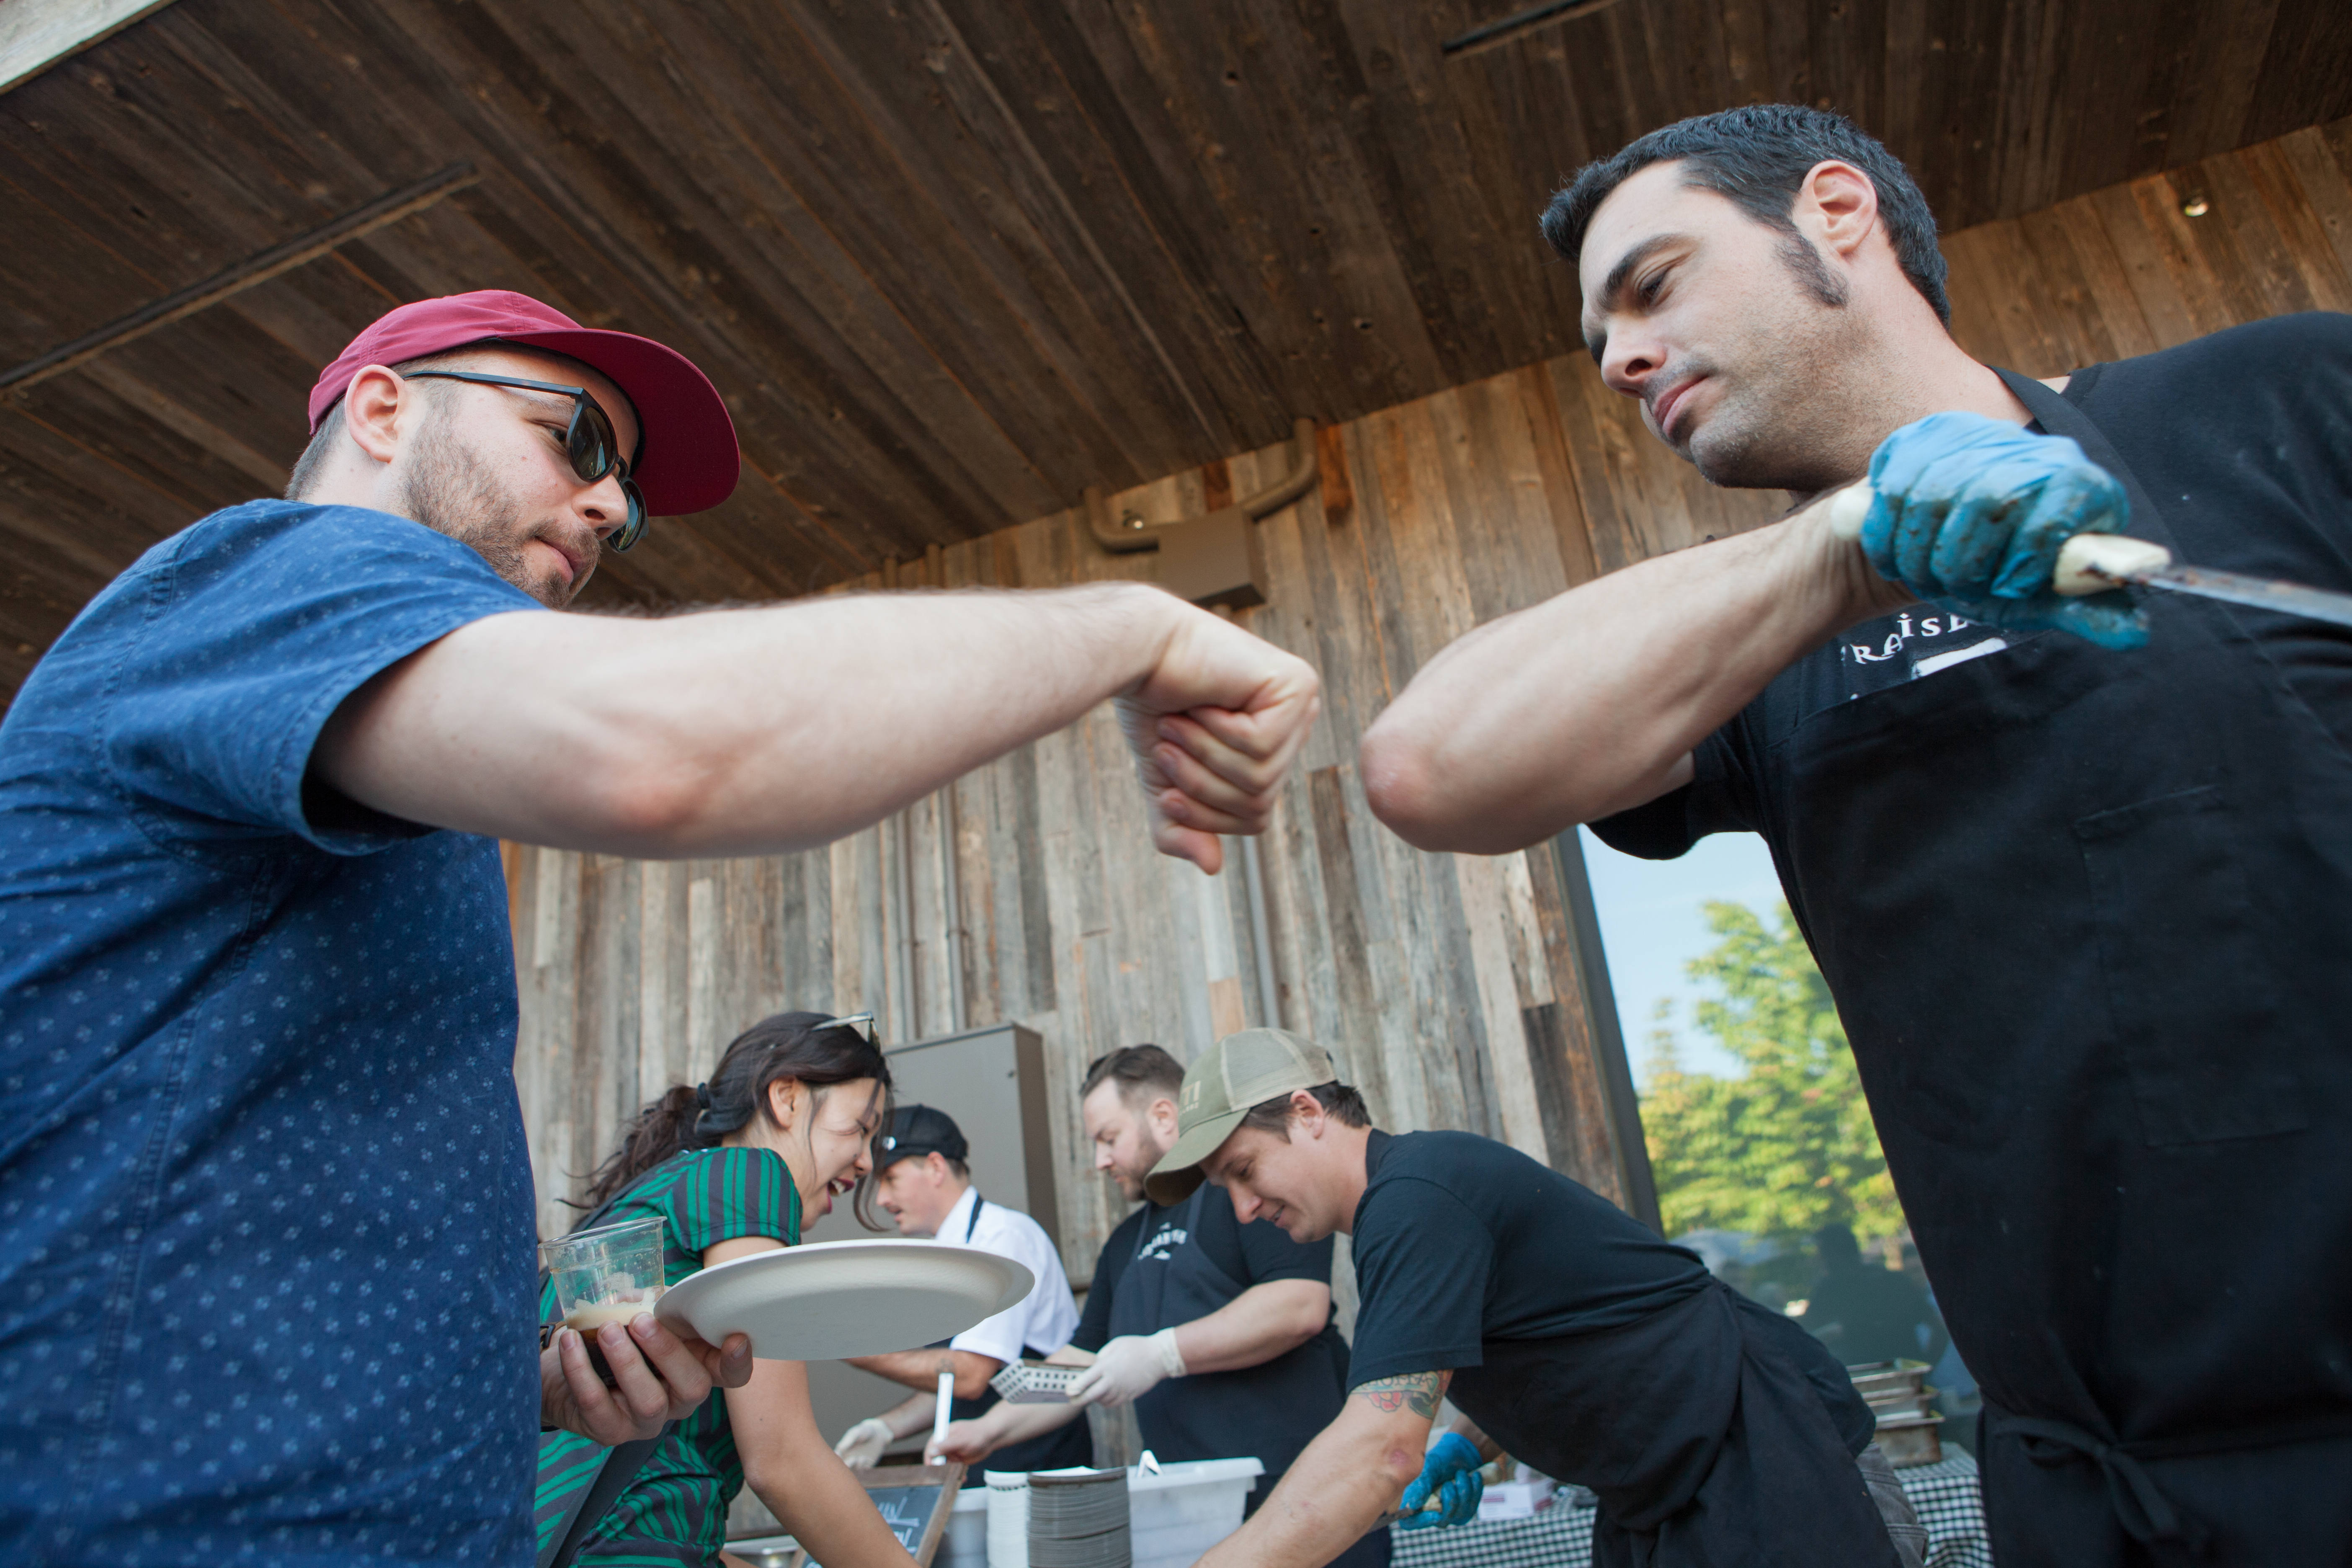 Aaron Franklin at Stumptown Coffee Cookout during Feast 2015